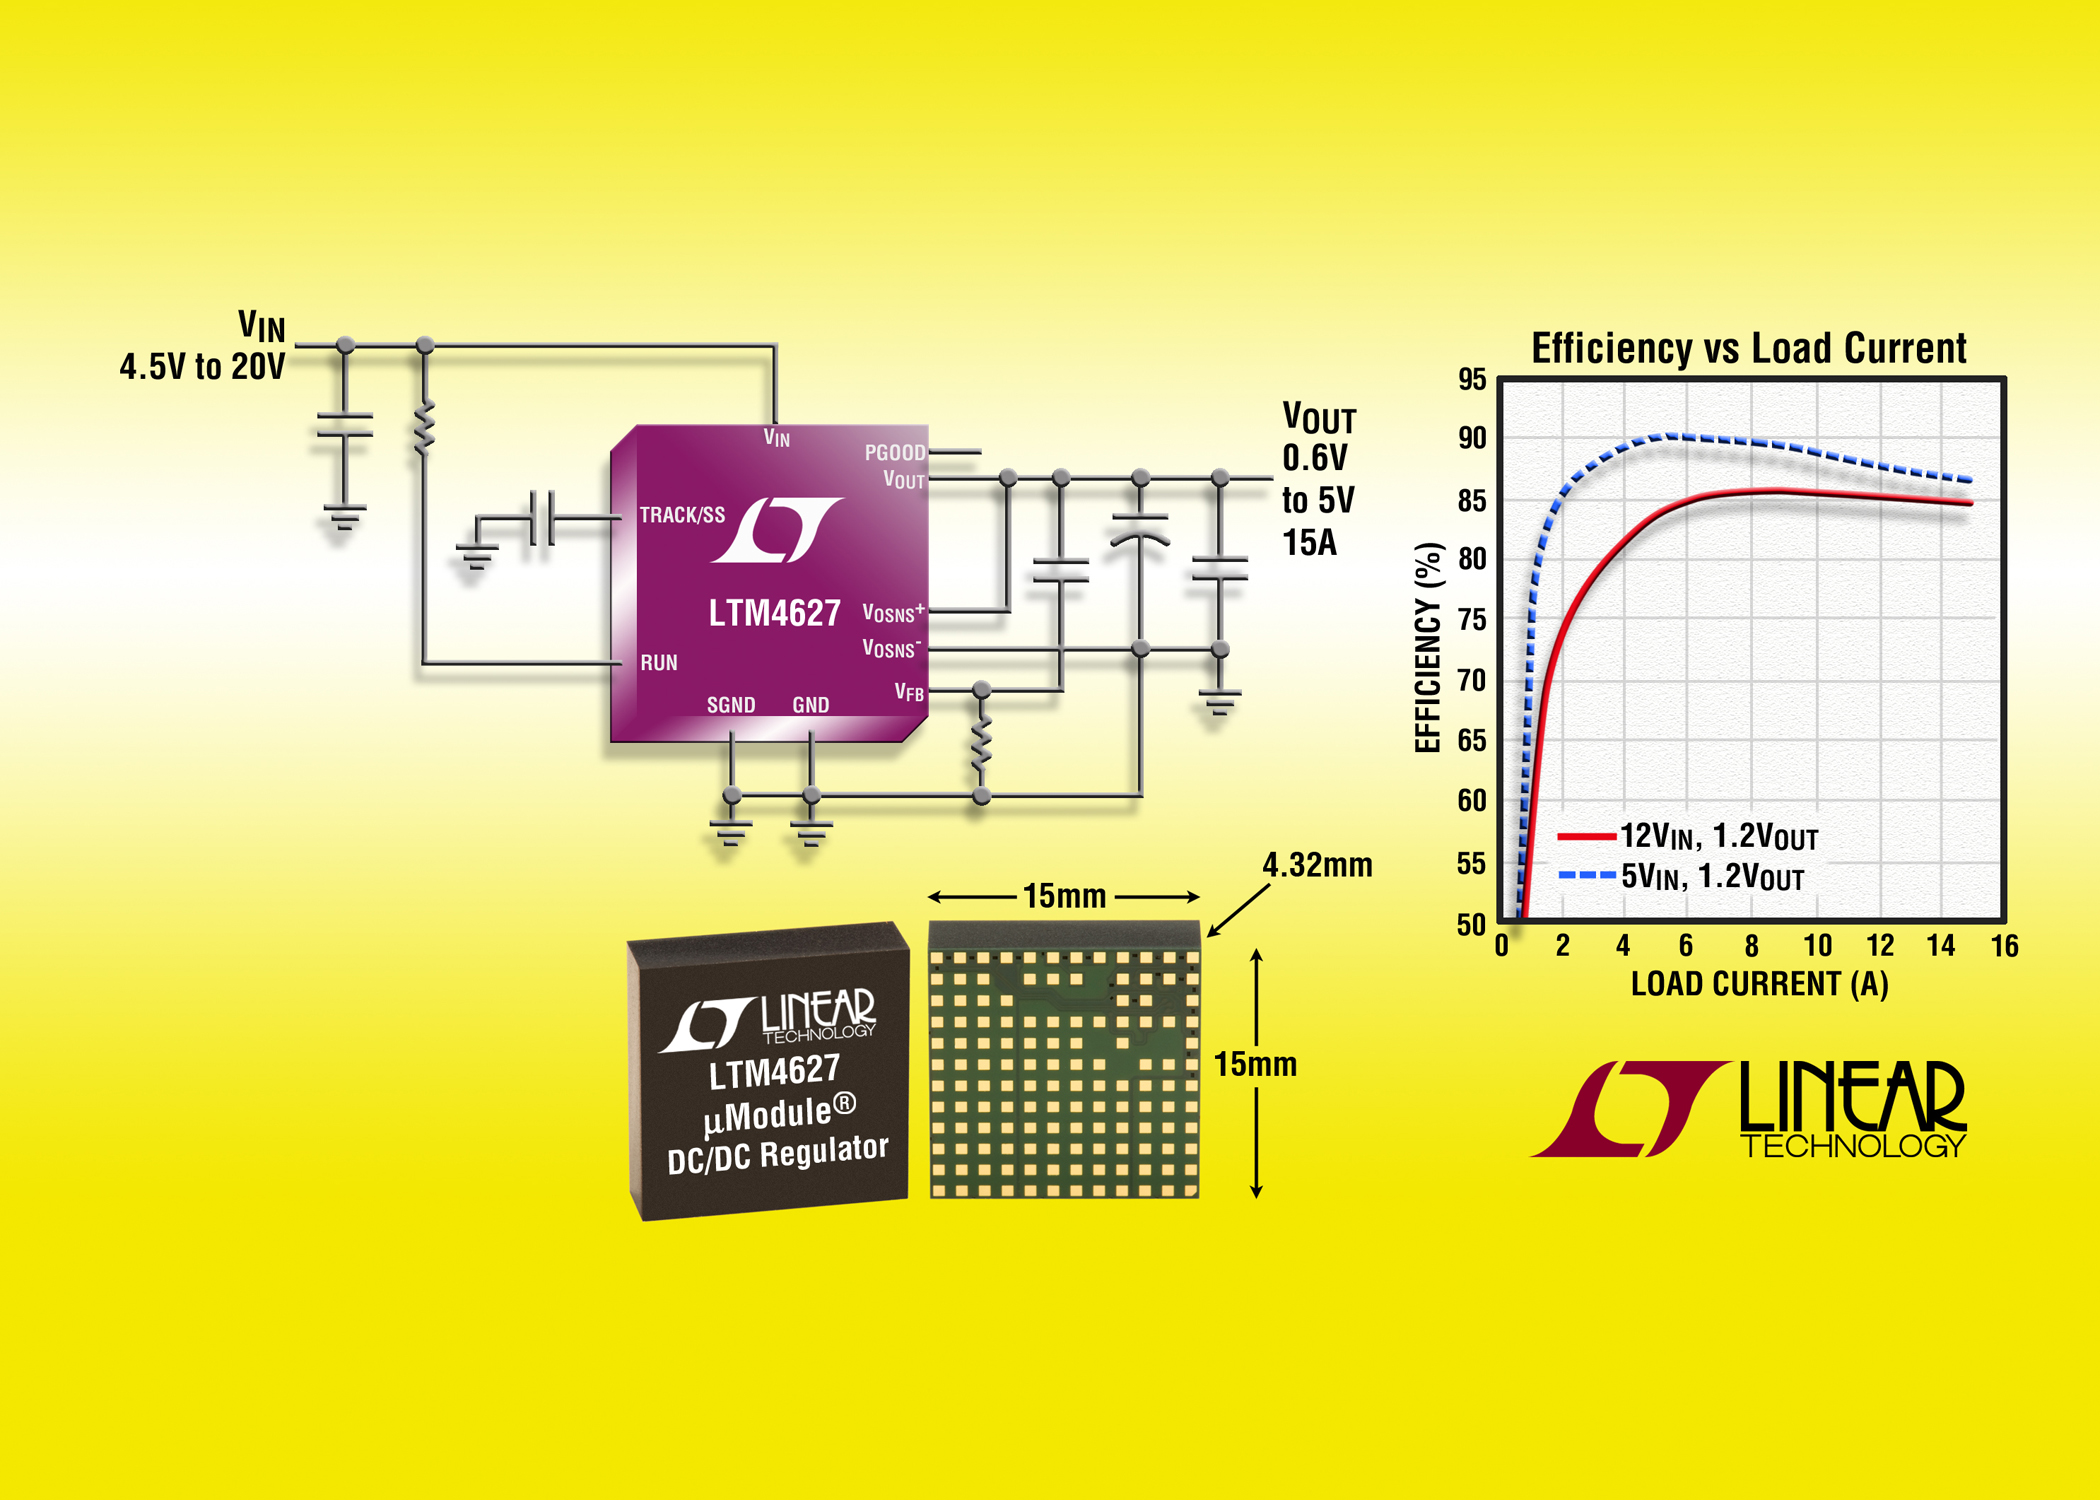 15A DC/DC uModule Regulator Delivers 50% More Power Without Sacrificing Board Area